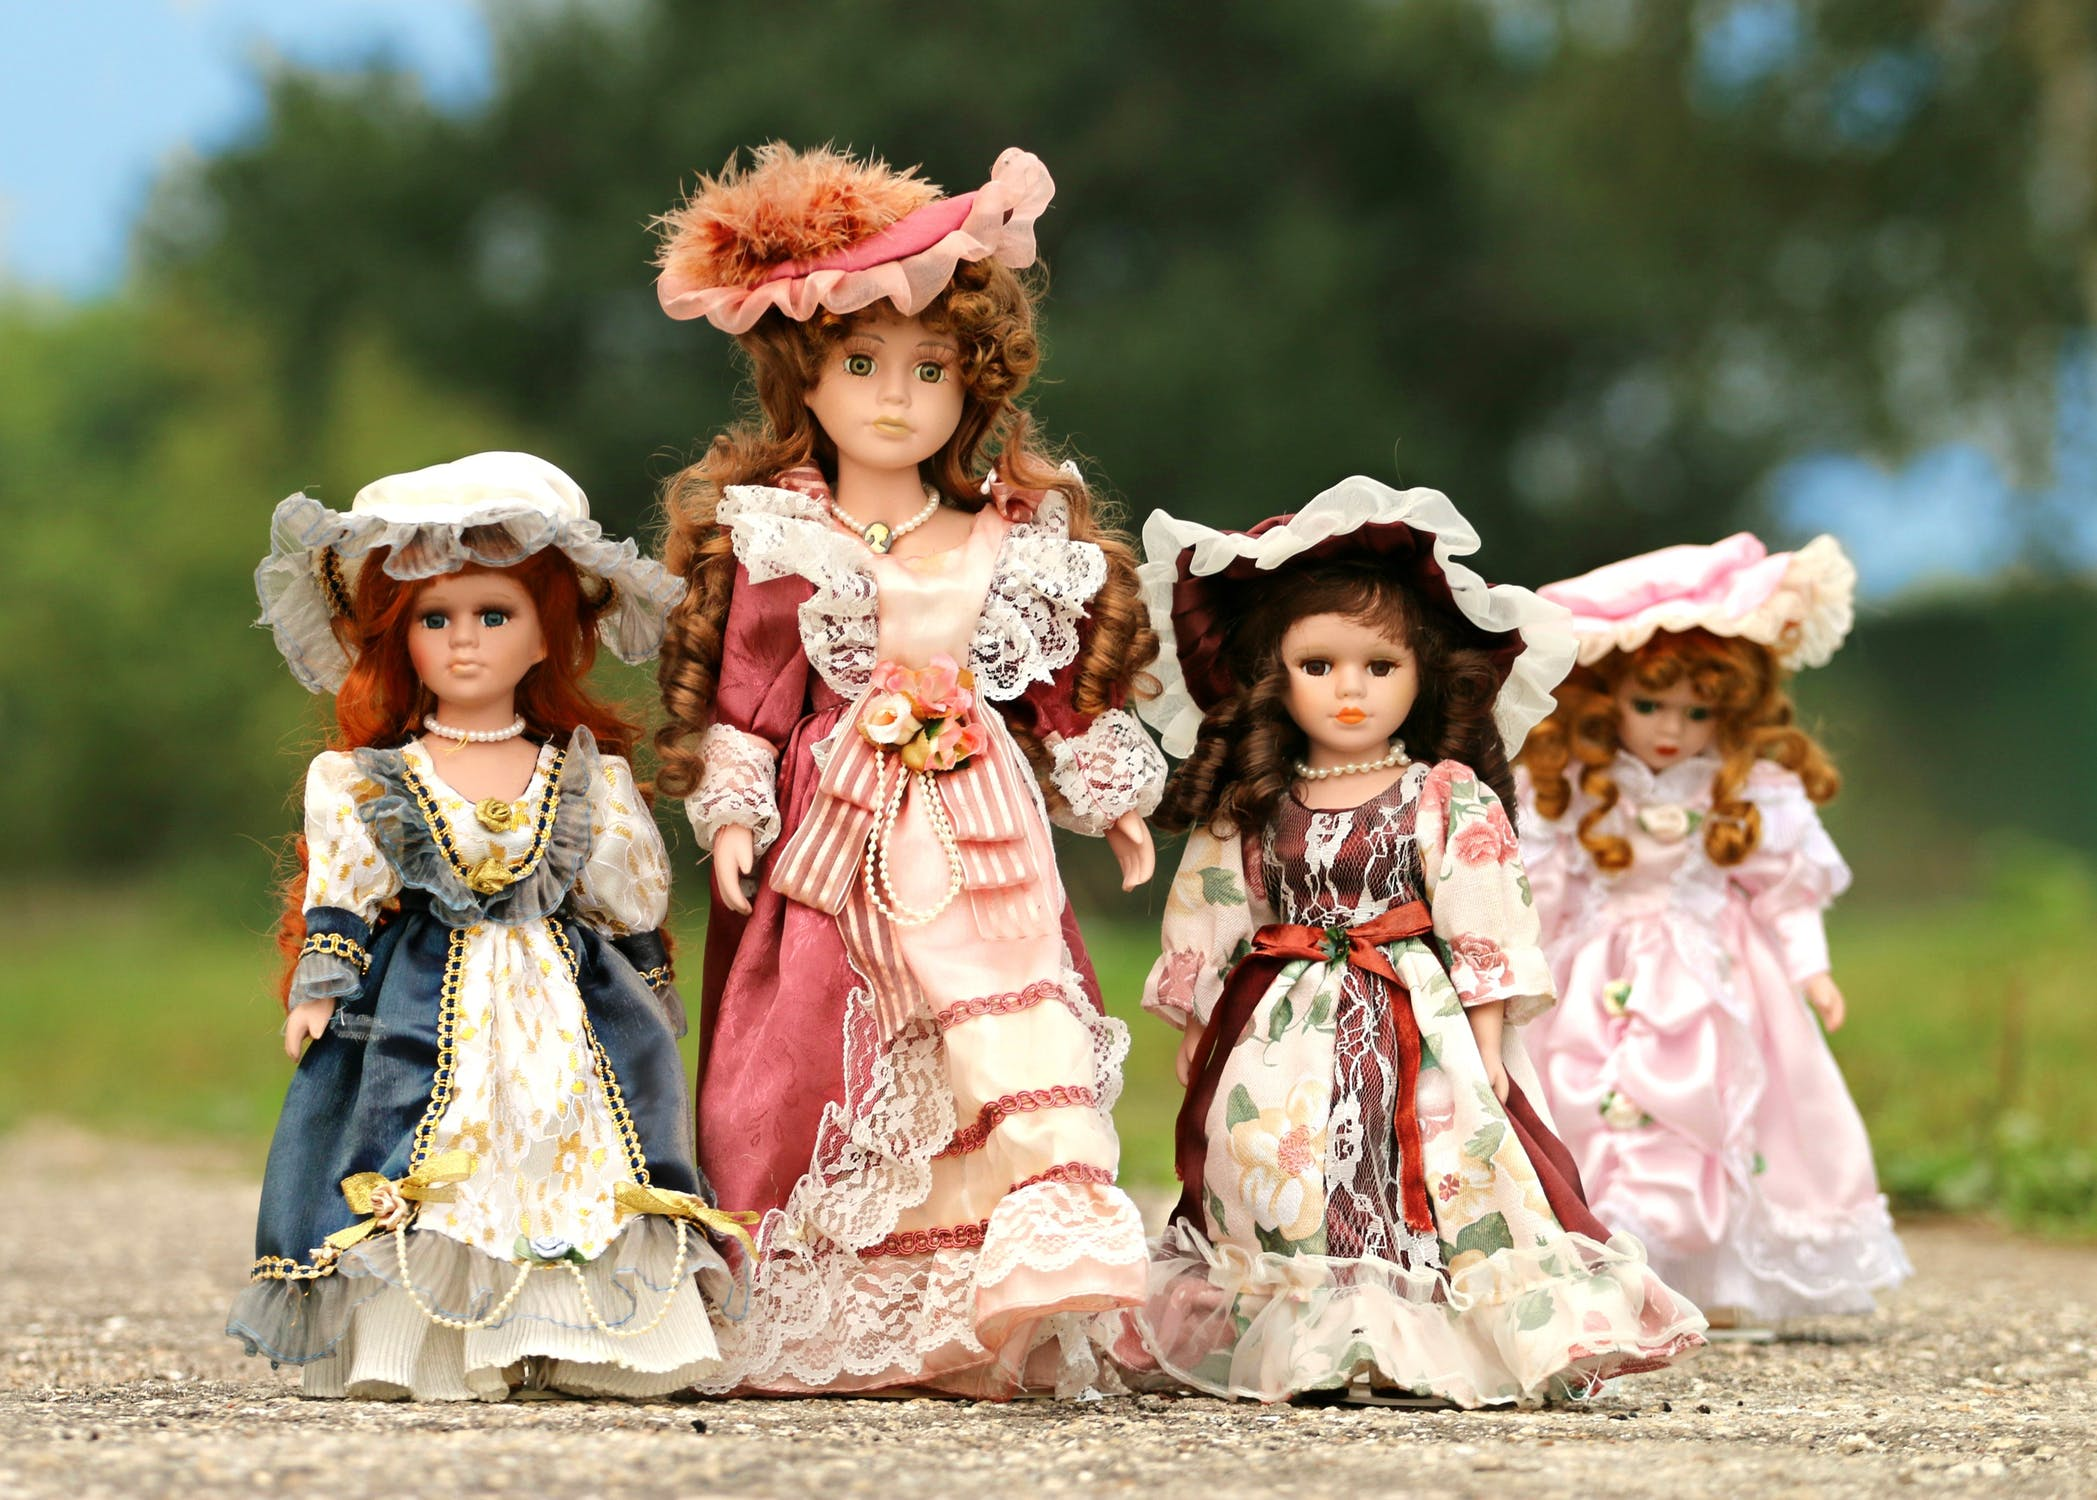 Reborn dolls, an important part of the American history